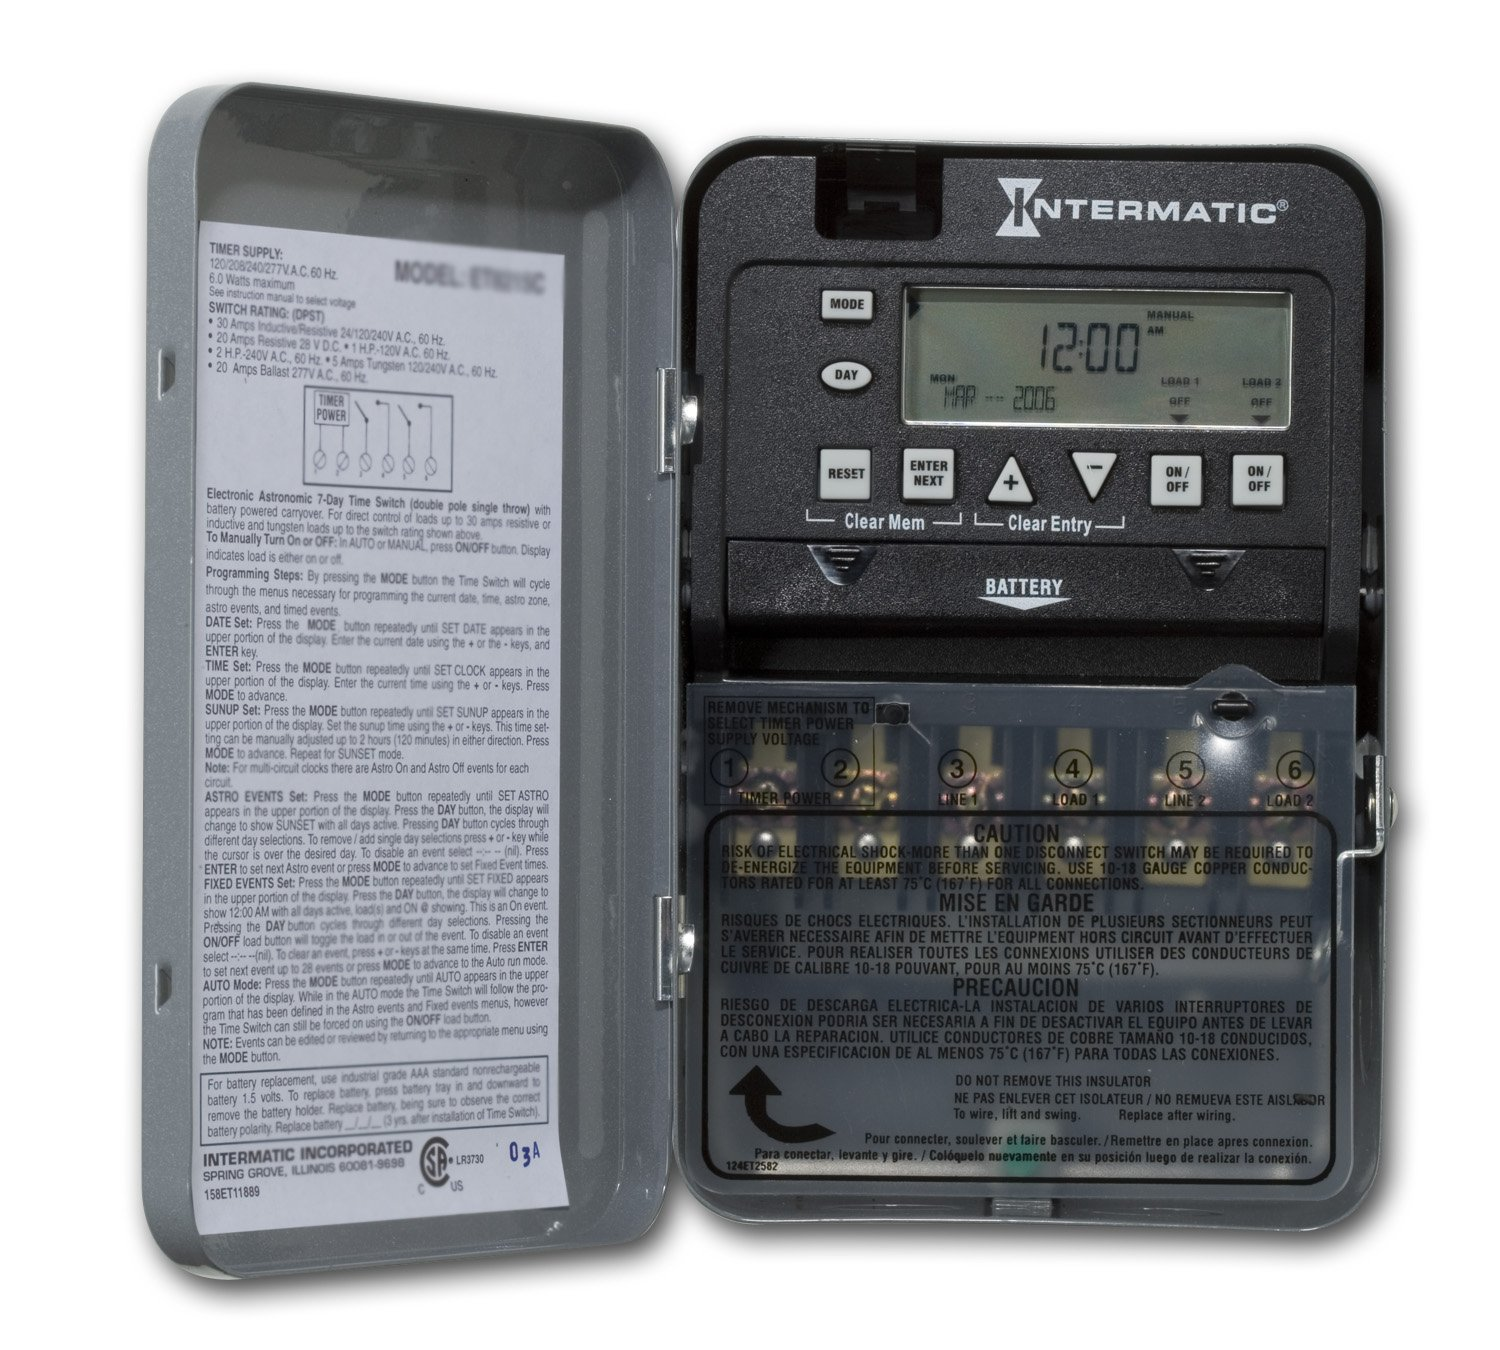 Intermatic ET1725C 7-Day 30-Amps 2XSPST OR DPST Electronic Time Switch, Clock Voltage 120-Volt - 277-Volt NEMA 1 by Intermatic